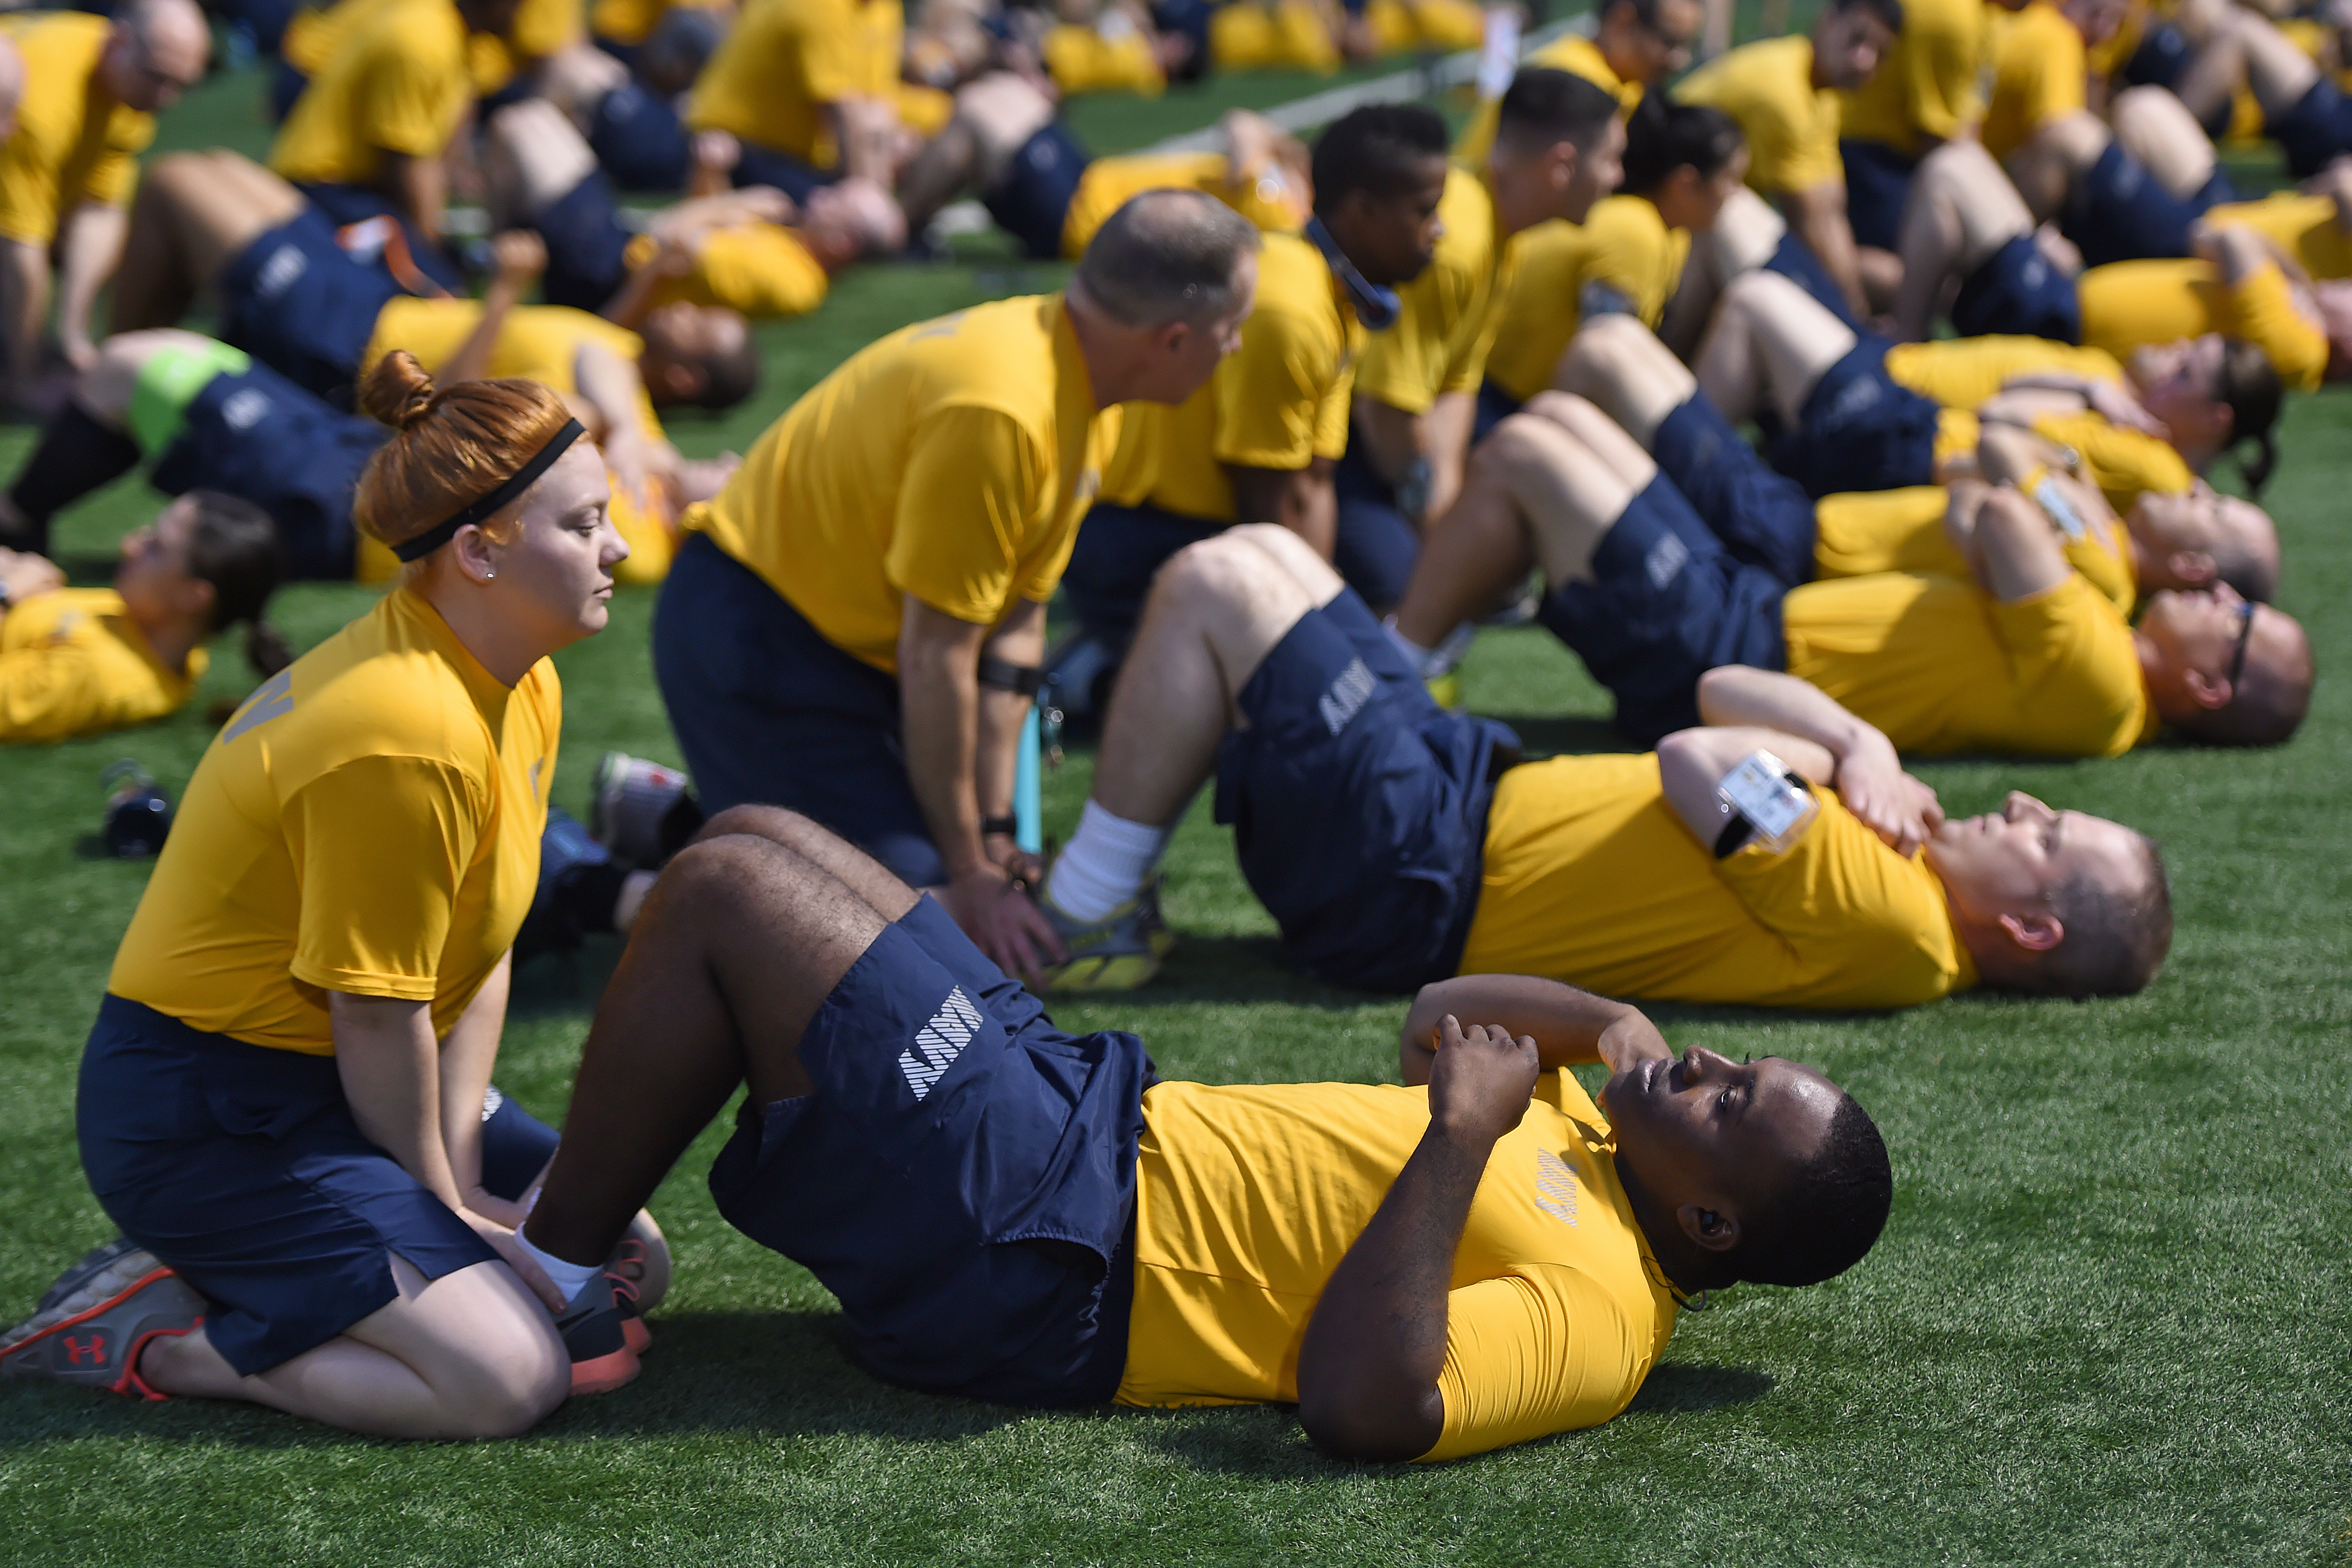 U.S. Sailors assigned to Combined Joint Task Force-Horn of Africa prepare to perform two minutes of curl-ups during a practice physical fitness test at Camp Lemonnier, Djibouti, Feb. 24, 2017. The trial assessment  gave Sailors an opportunity to test their physical readiness prior to the April implementation of the Navy Physical Fitness Assessment program, from which they were previously exempted. (U.S. Air National Guard photo by Master Sgt. Paul Gorman)